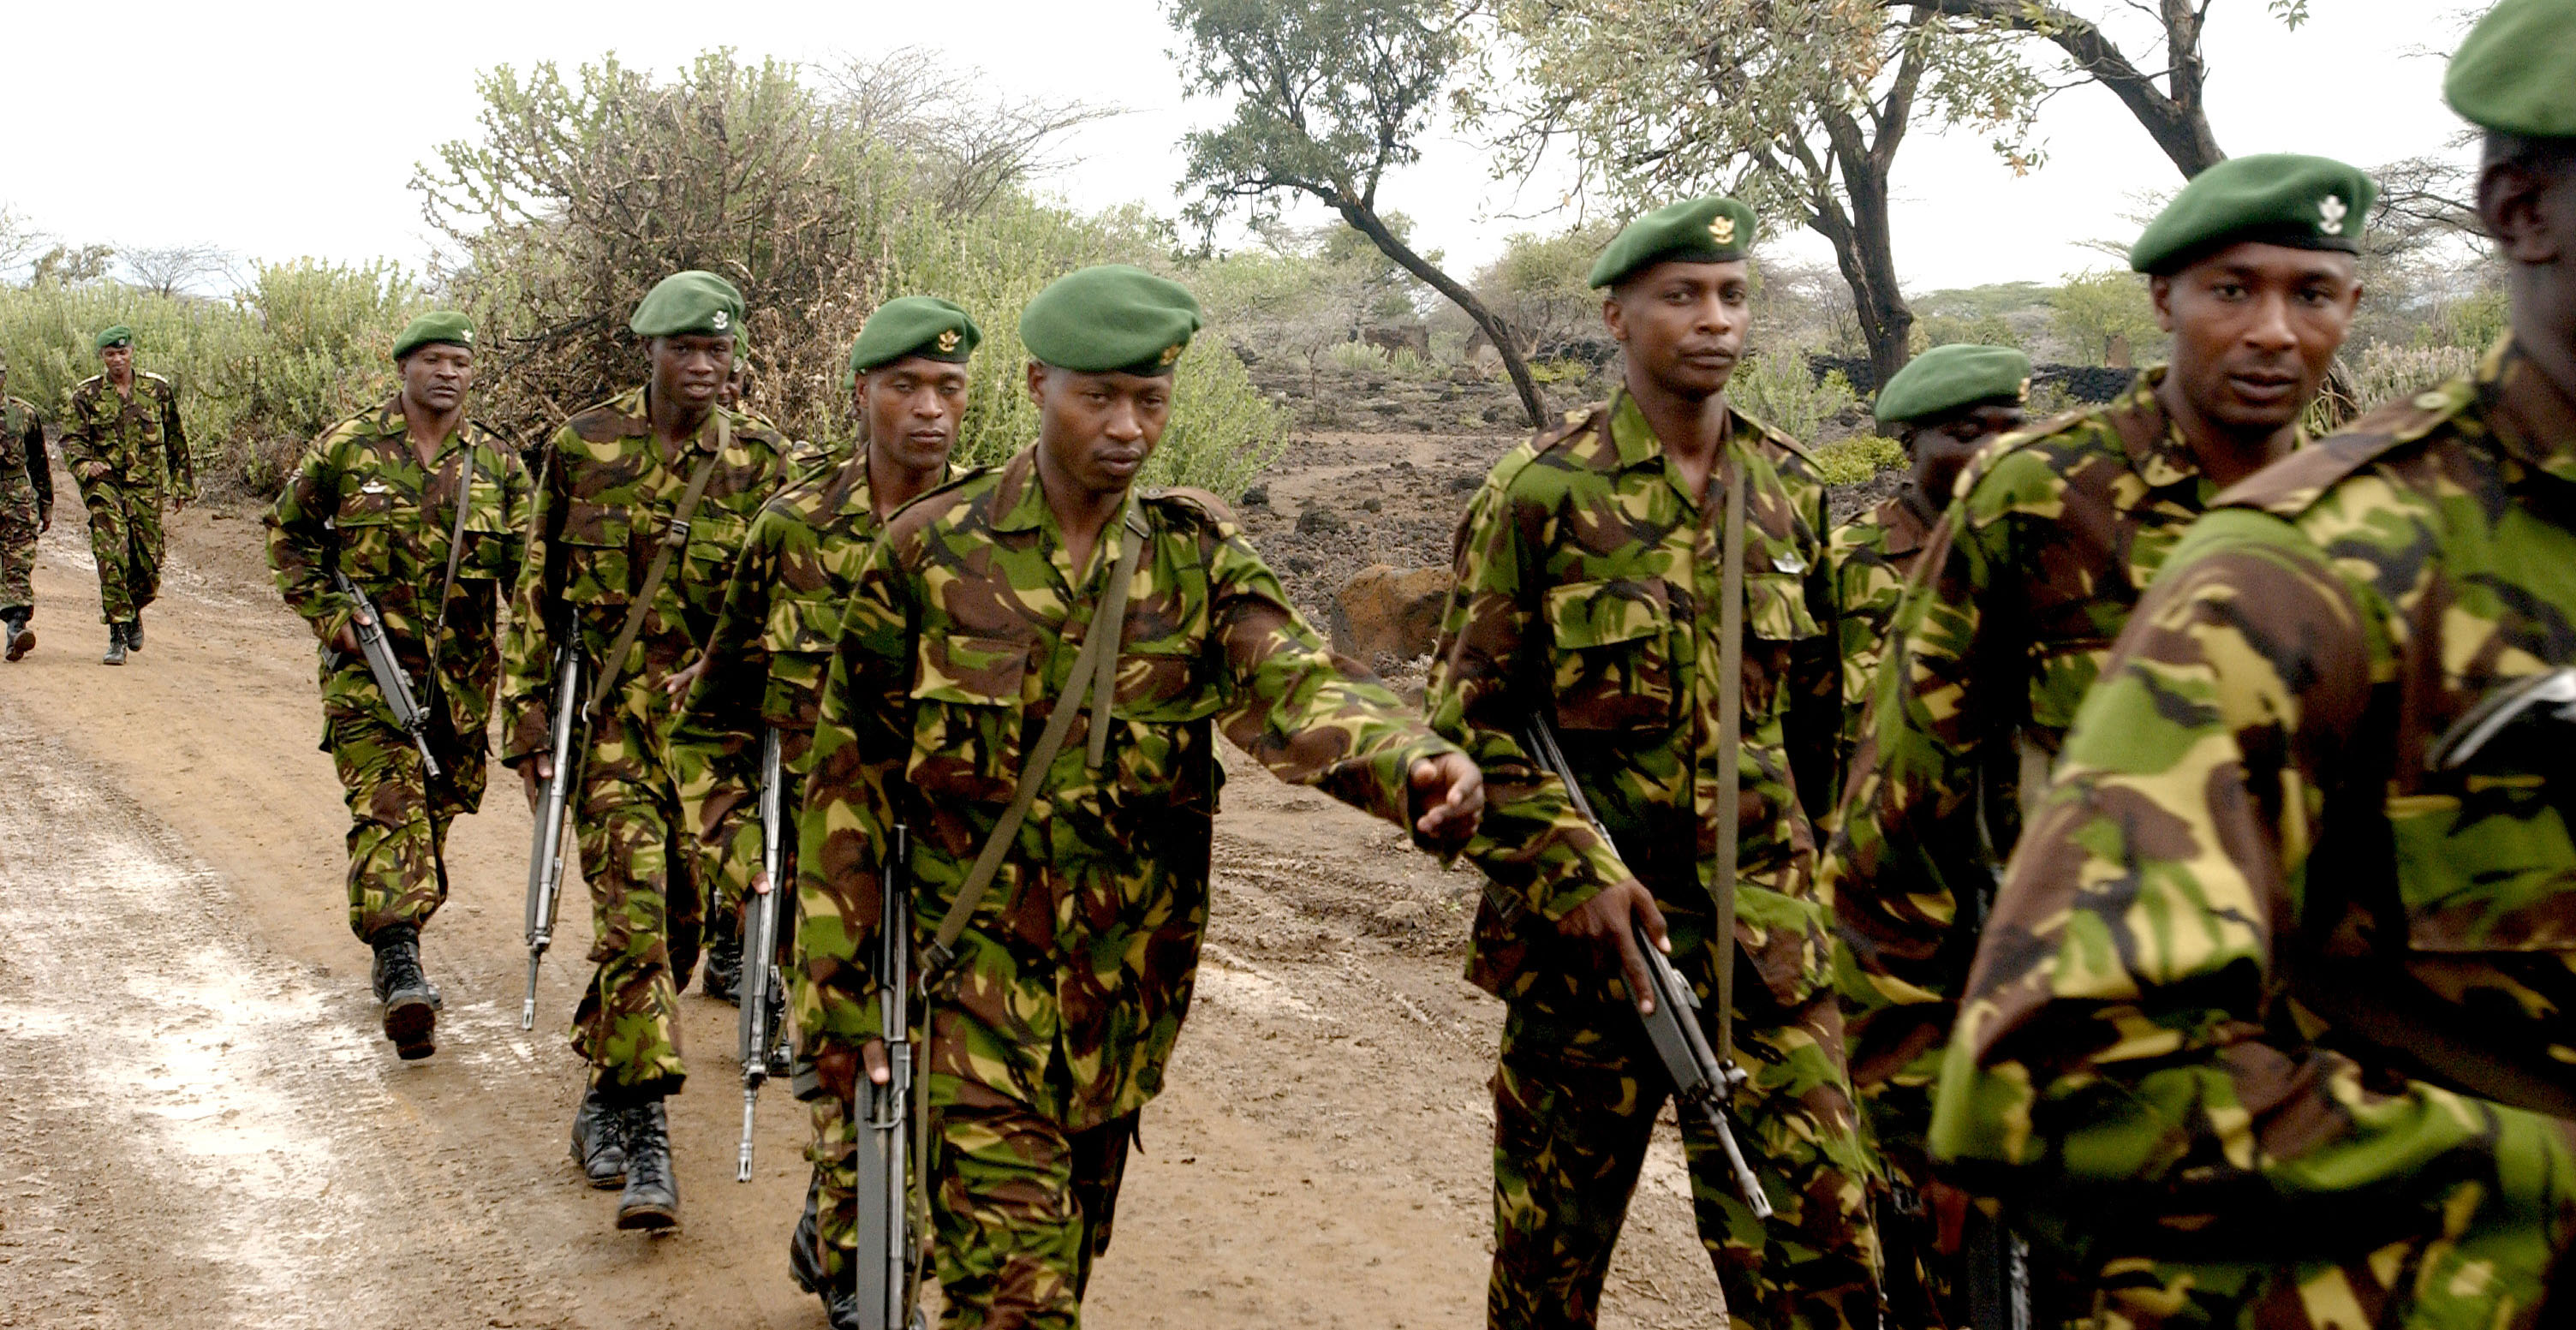 Kenyan military personnel, 2006. Photo: US Air Force